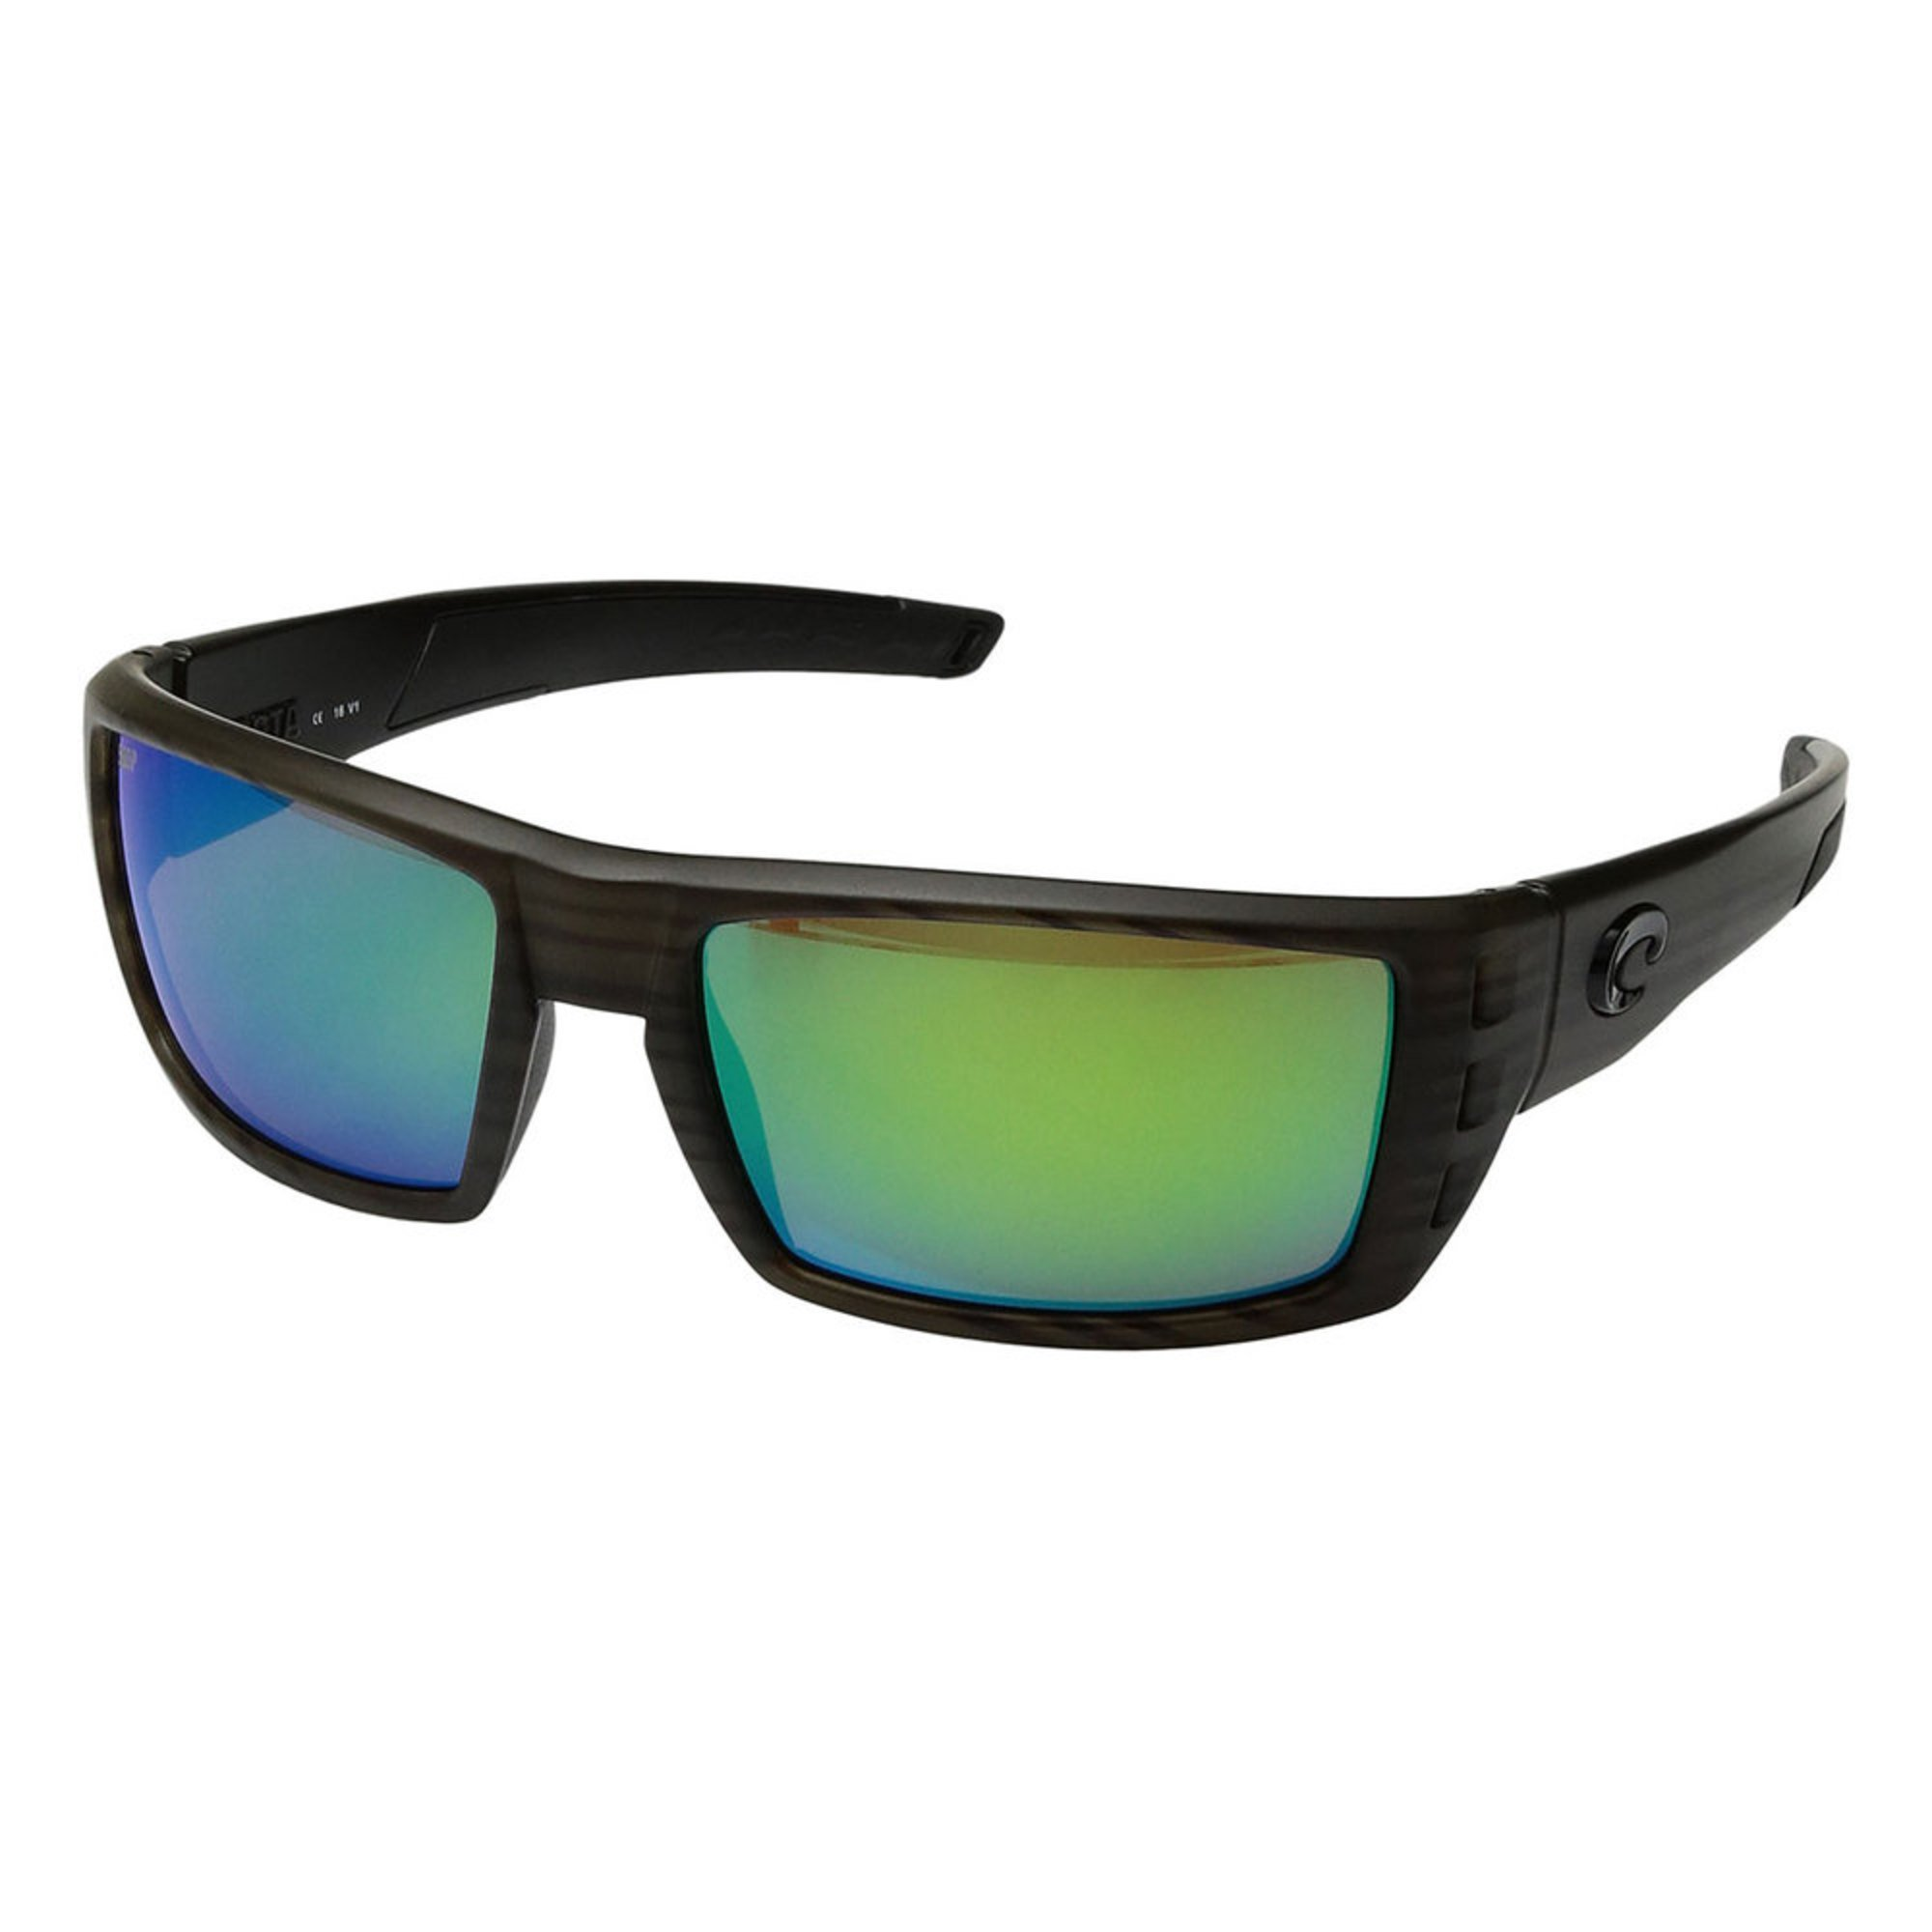 42e03159c03 Costa del Mar. Costa Del Mar Men s Polarized Rafael Sunglasses